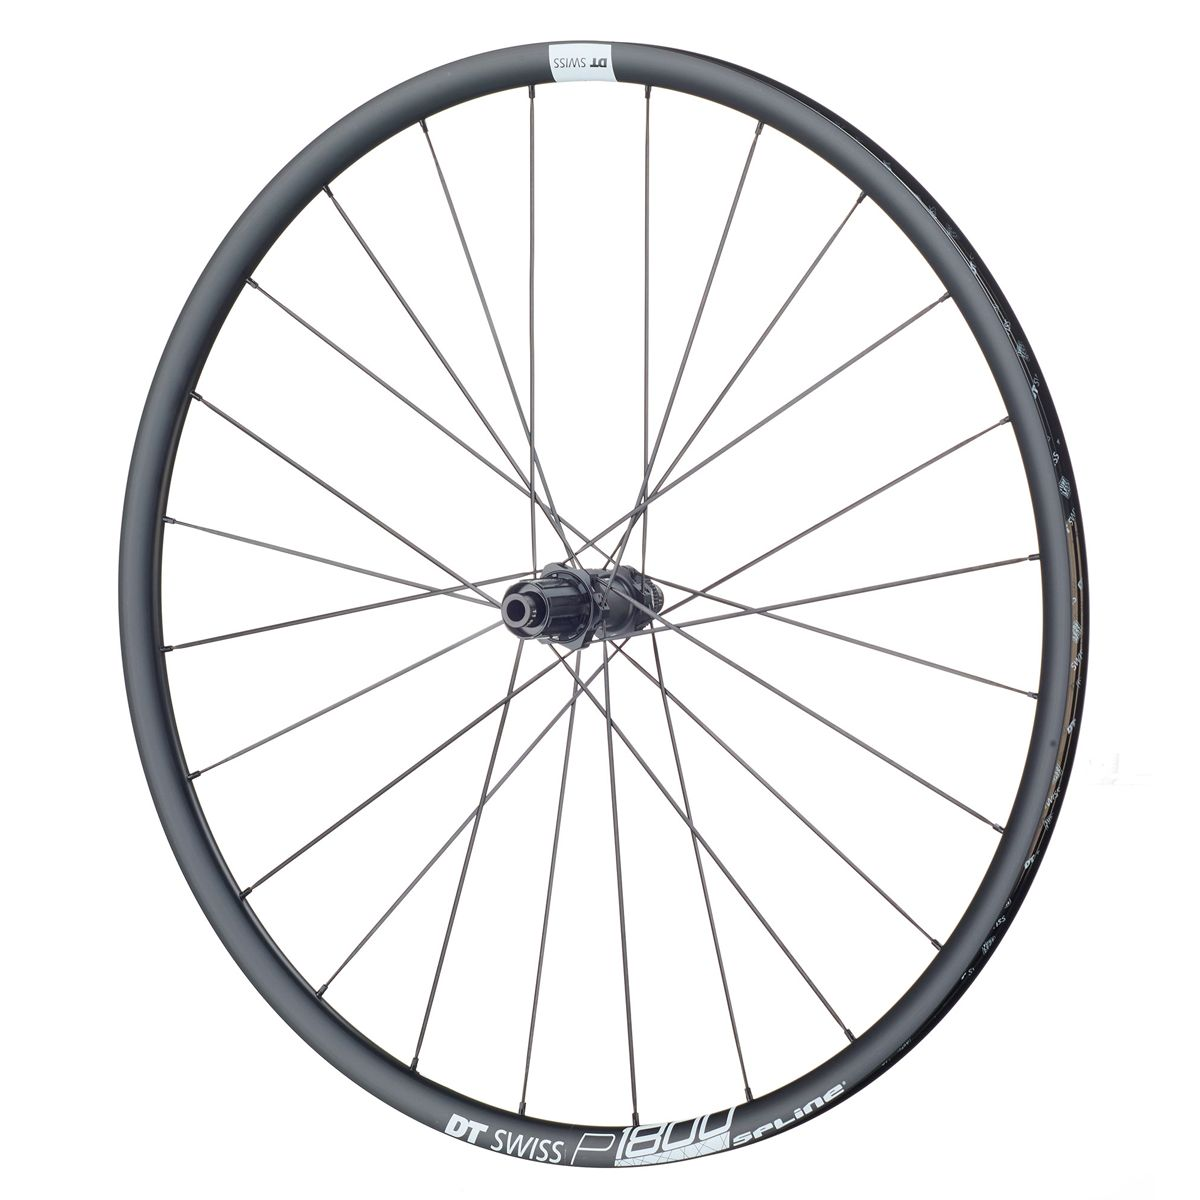 P 1800 Spline 23 db road rear wheel 28